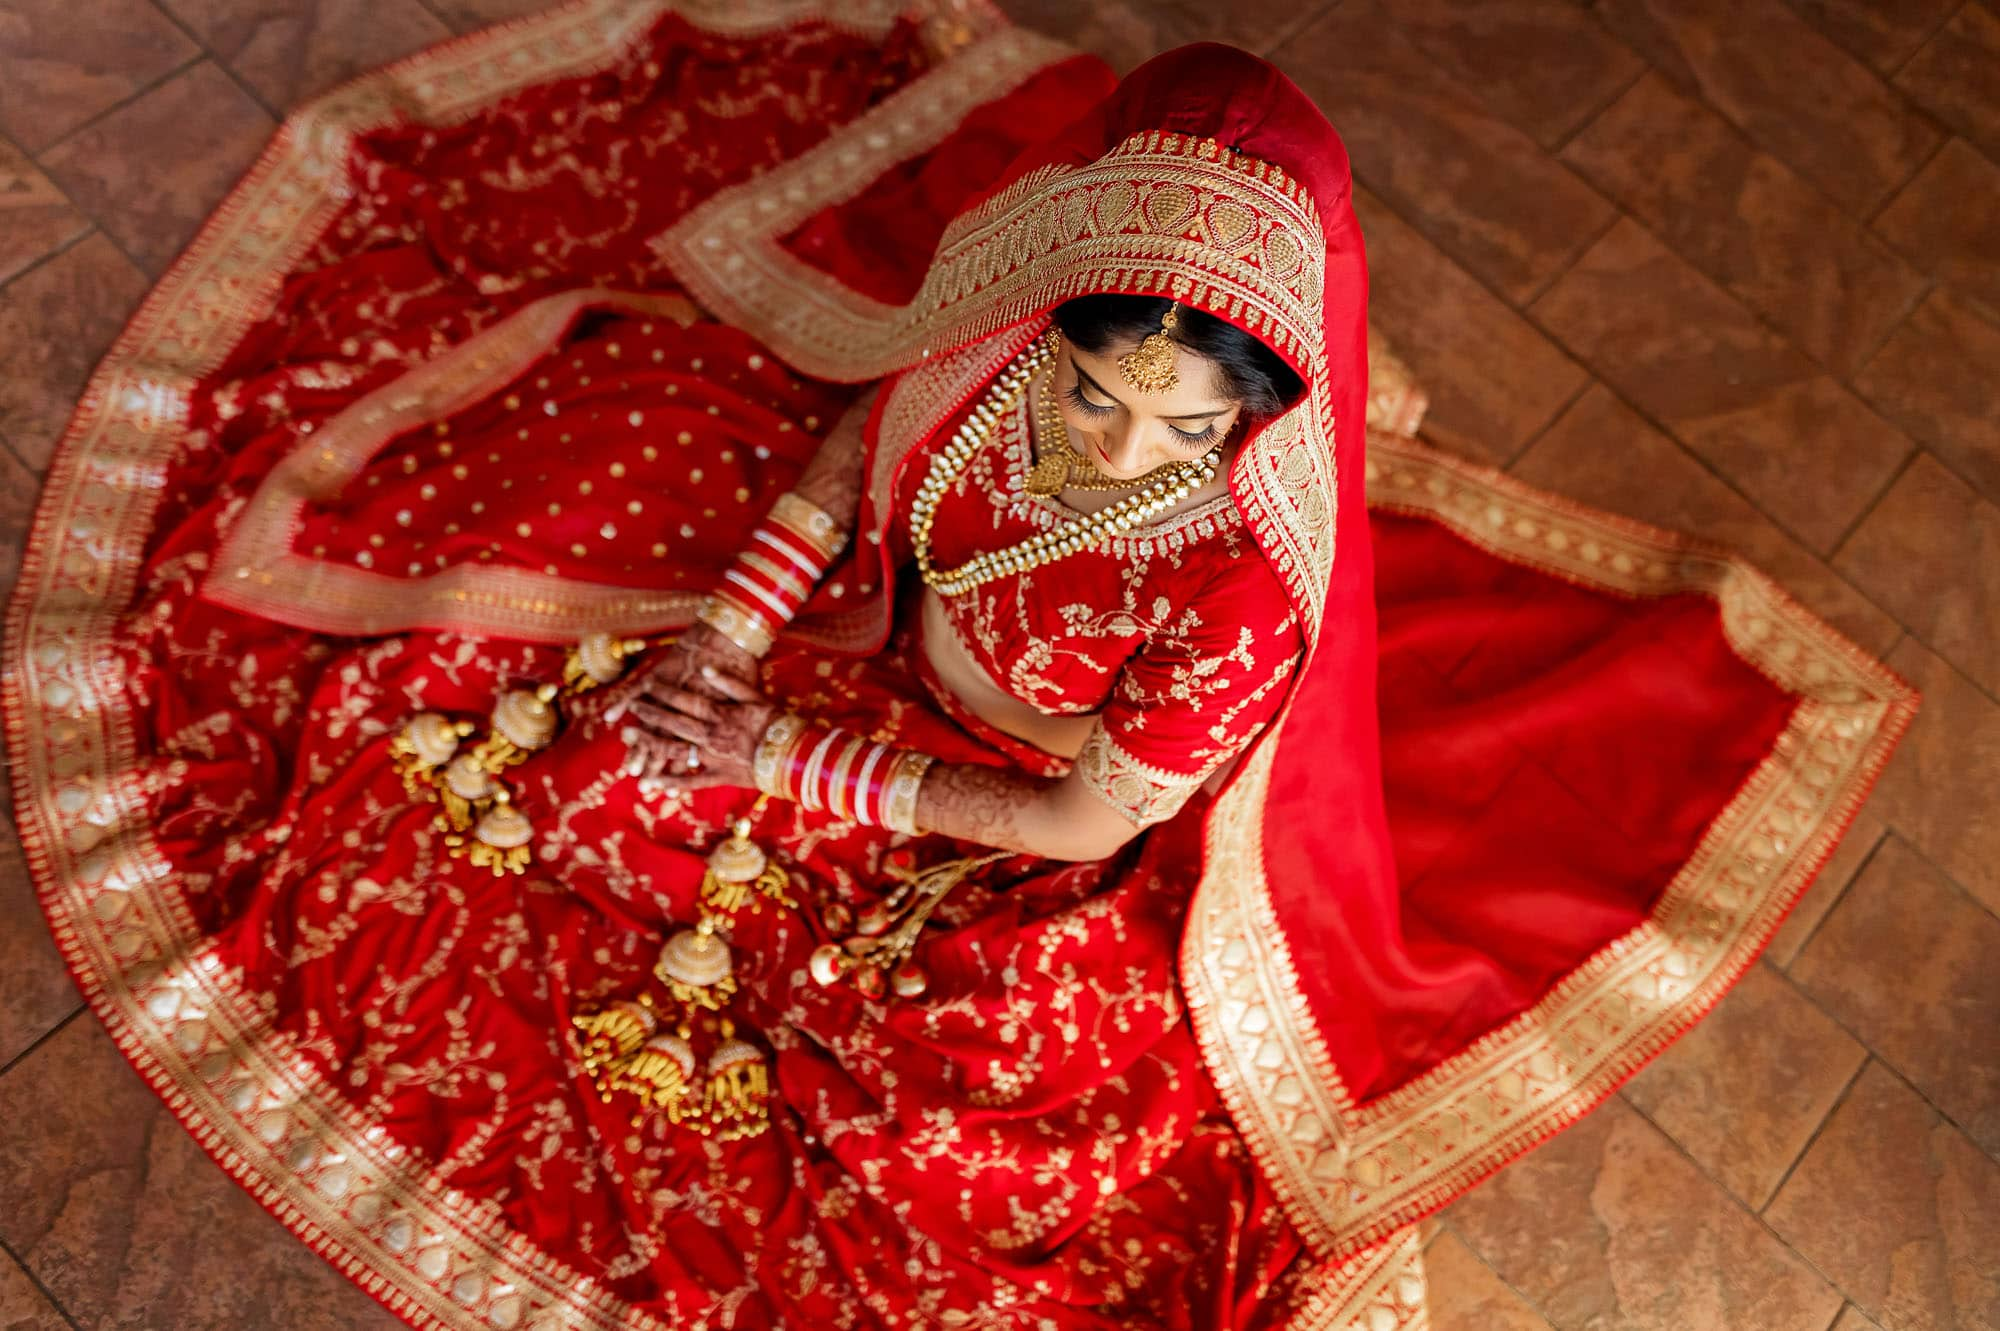 The bride is ready for her traditional Hindu Muslim wedding ceremony.